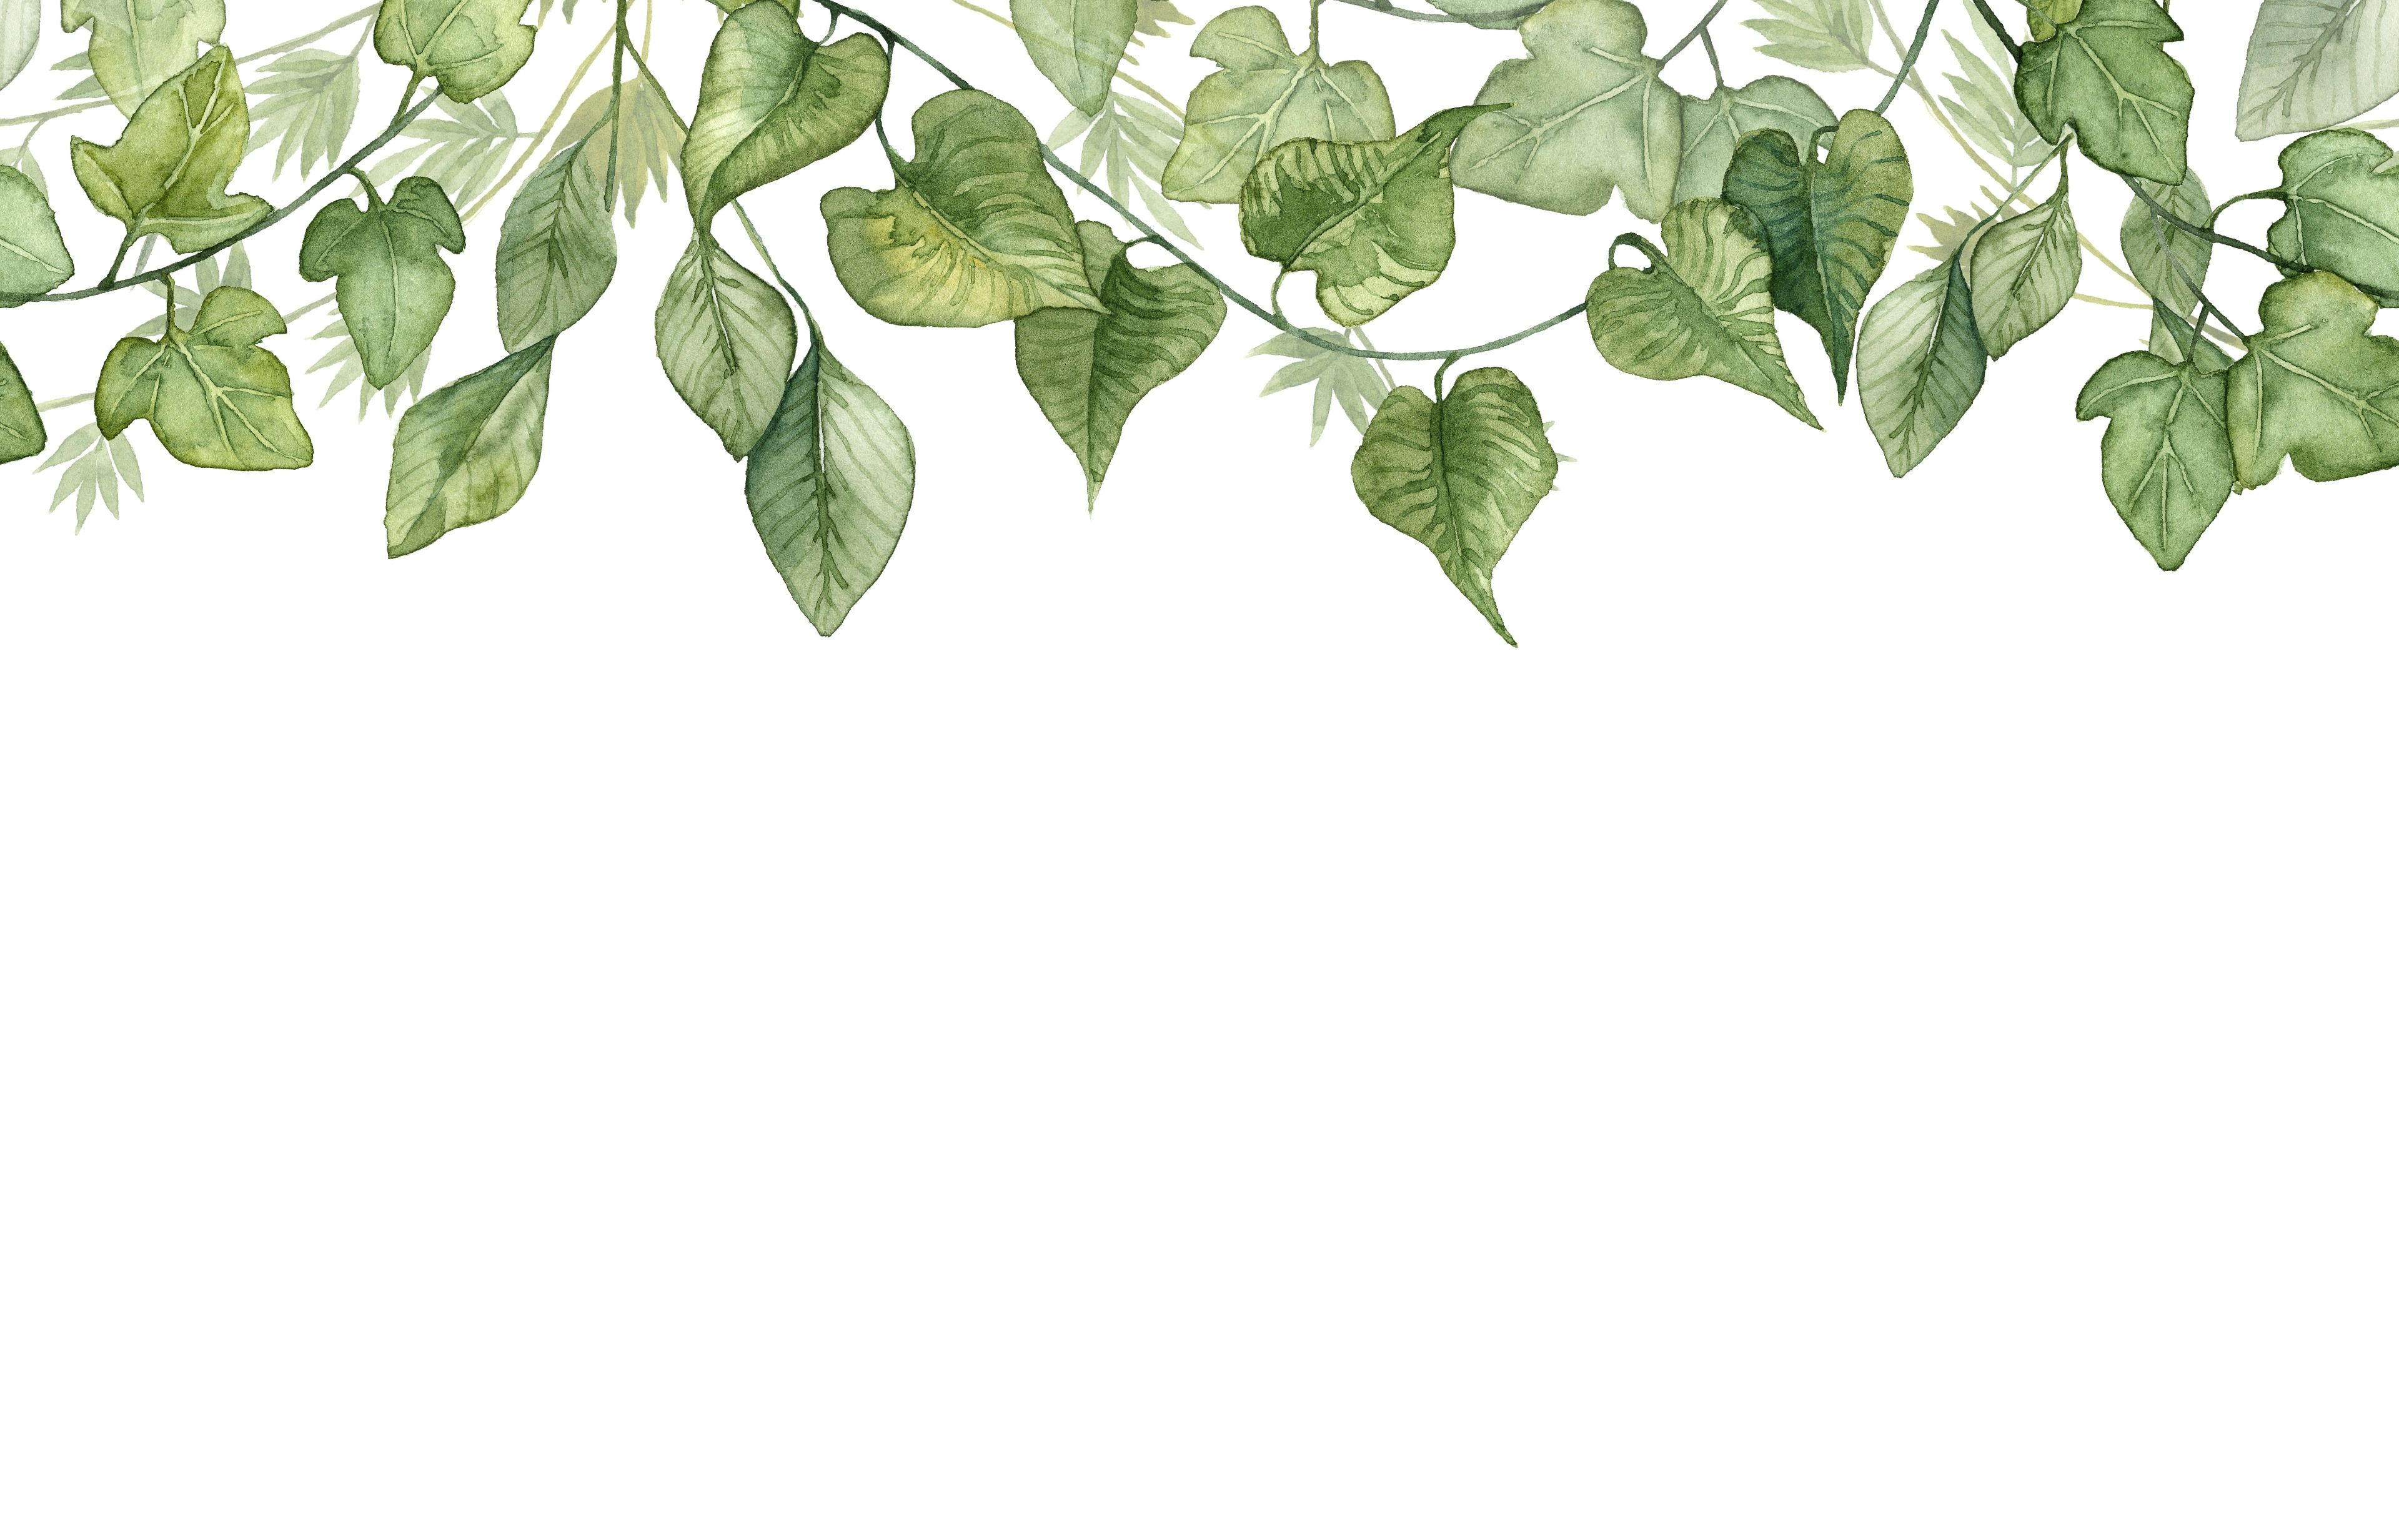 Hanging watercolour leaves